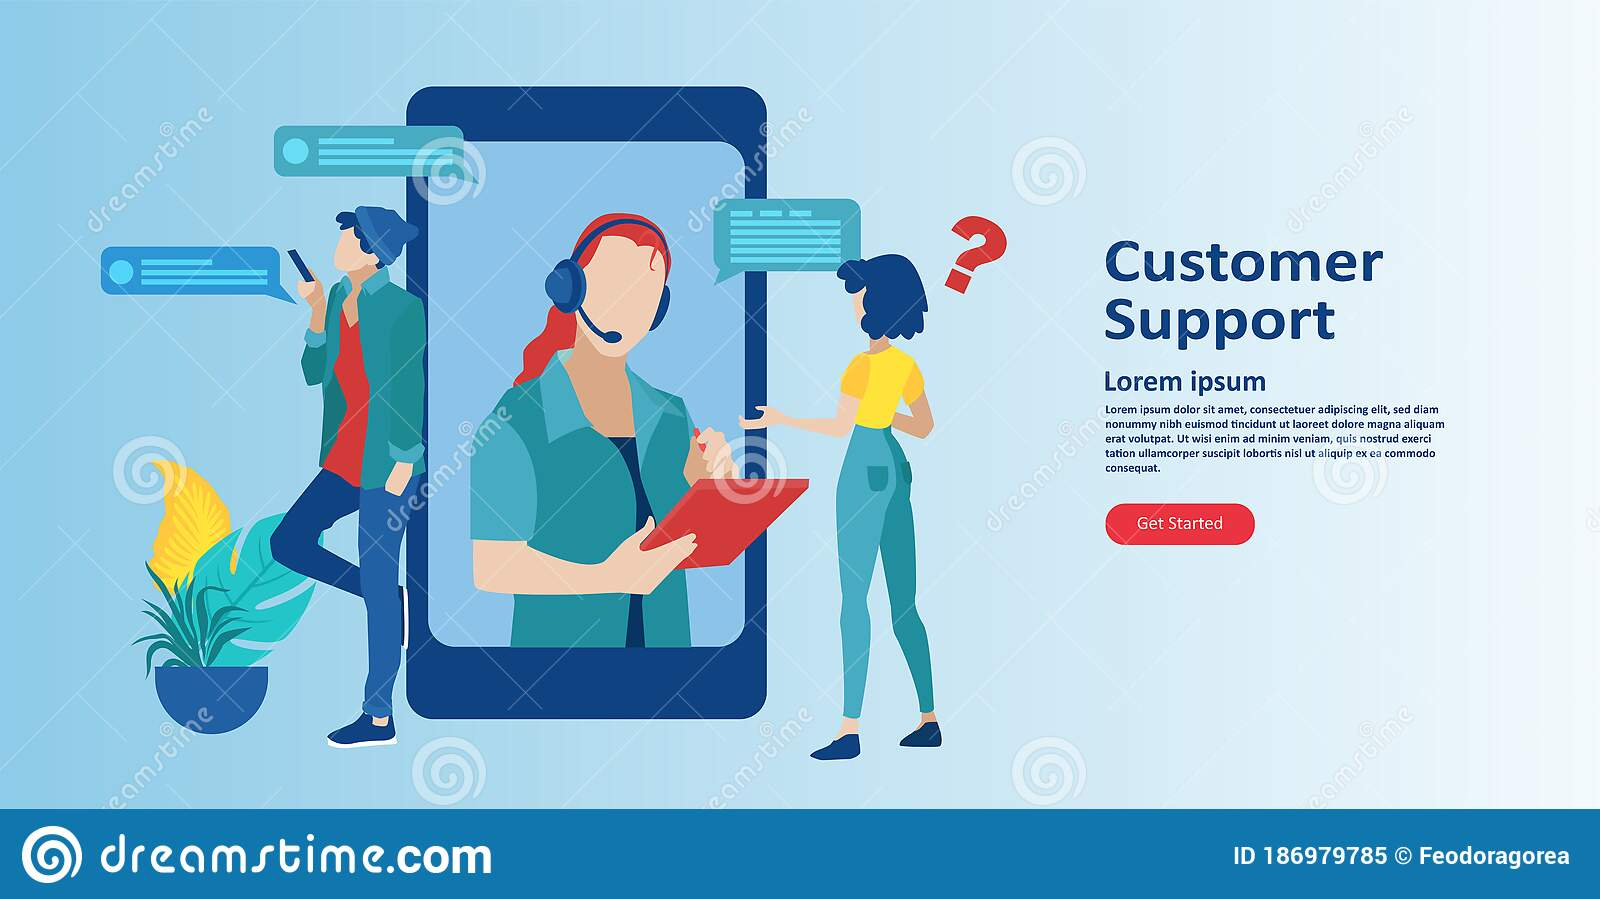 Vector Of An Mobile Service Operator With Headset Answering Client Questions Stock Vector Illustration Of Cellphone Communication 186979785